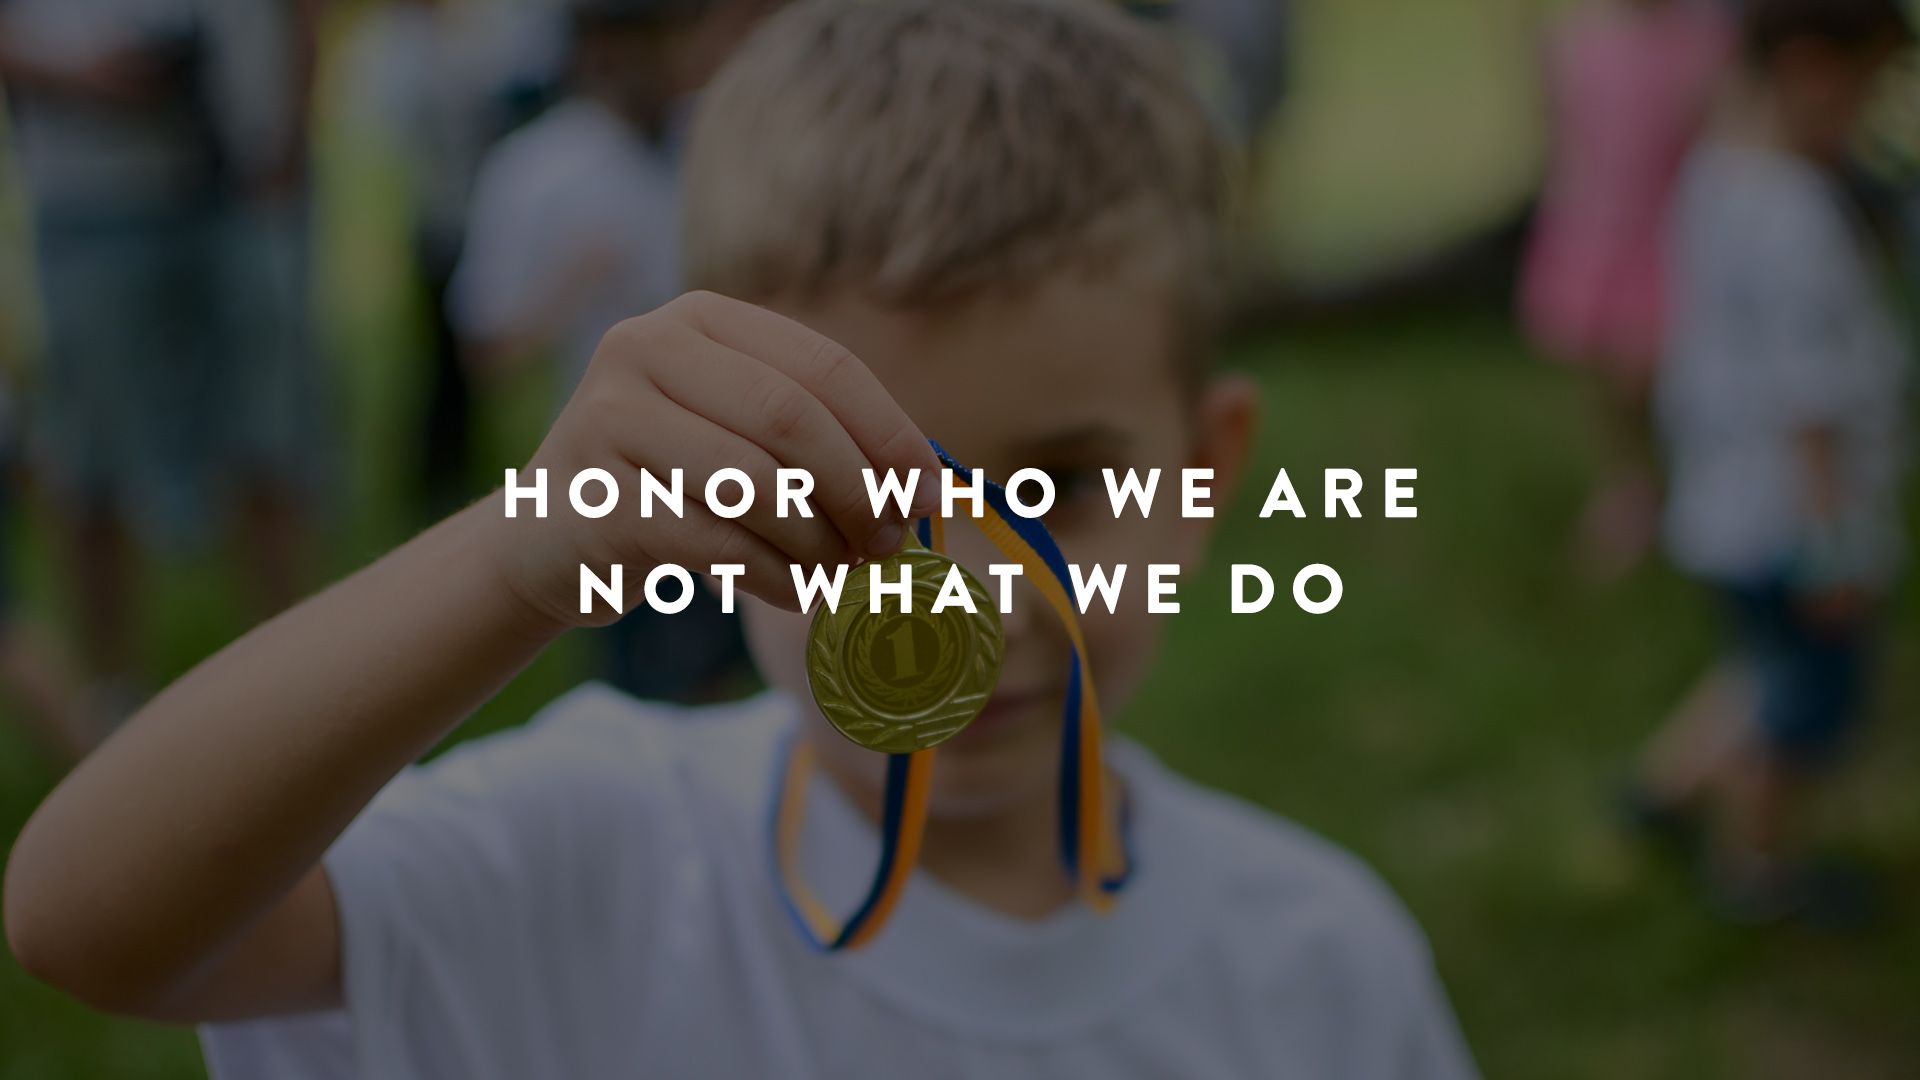 honor who we are not what we do